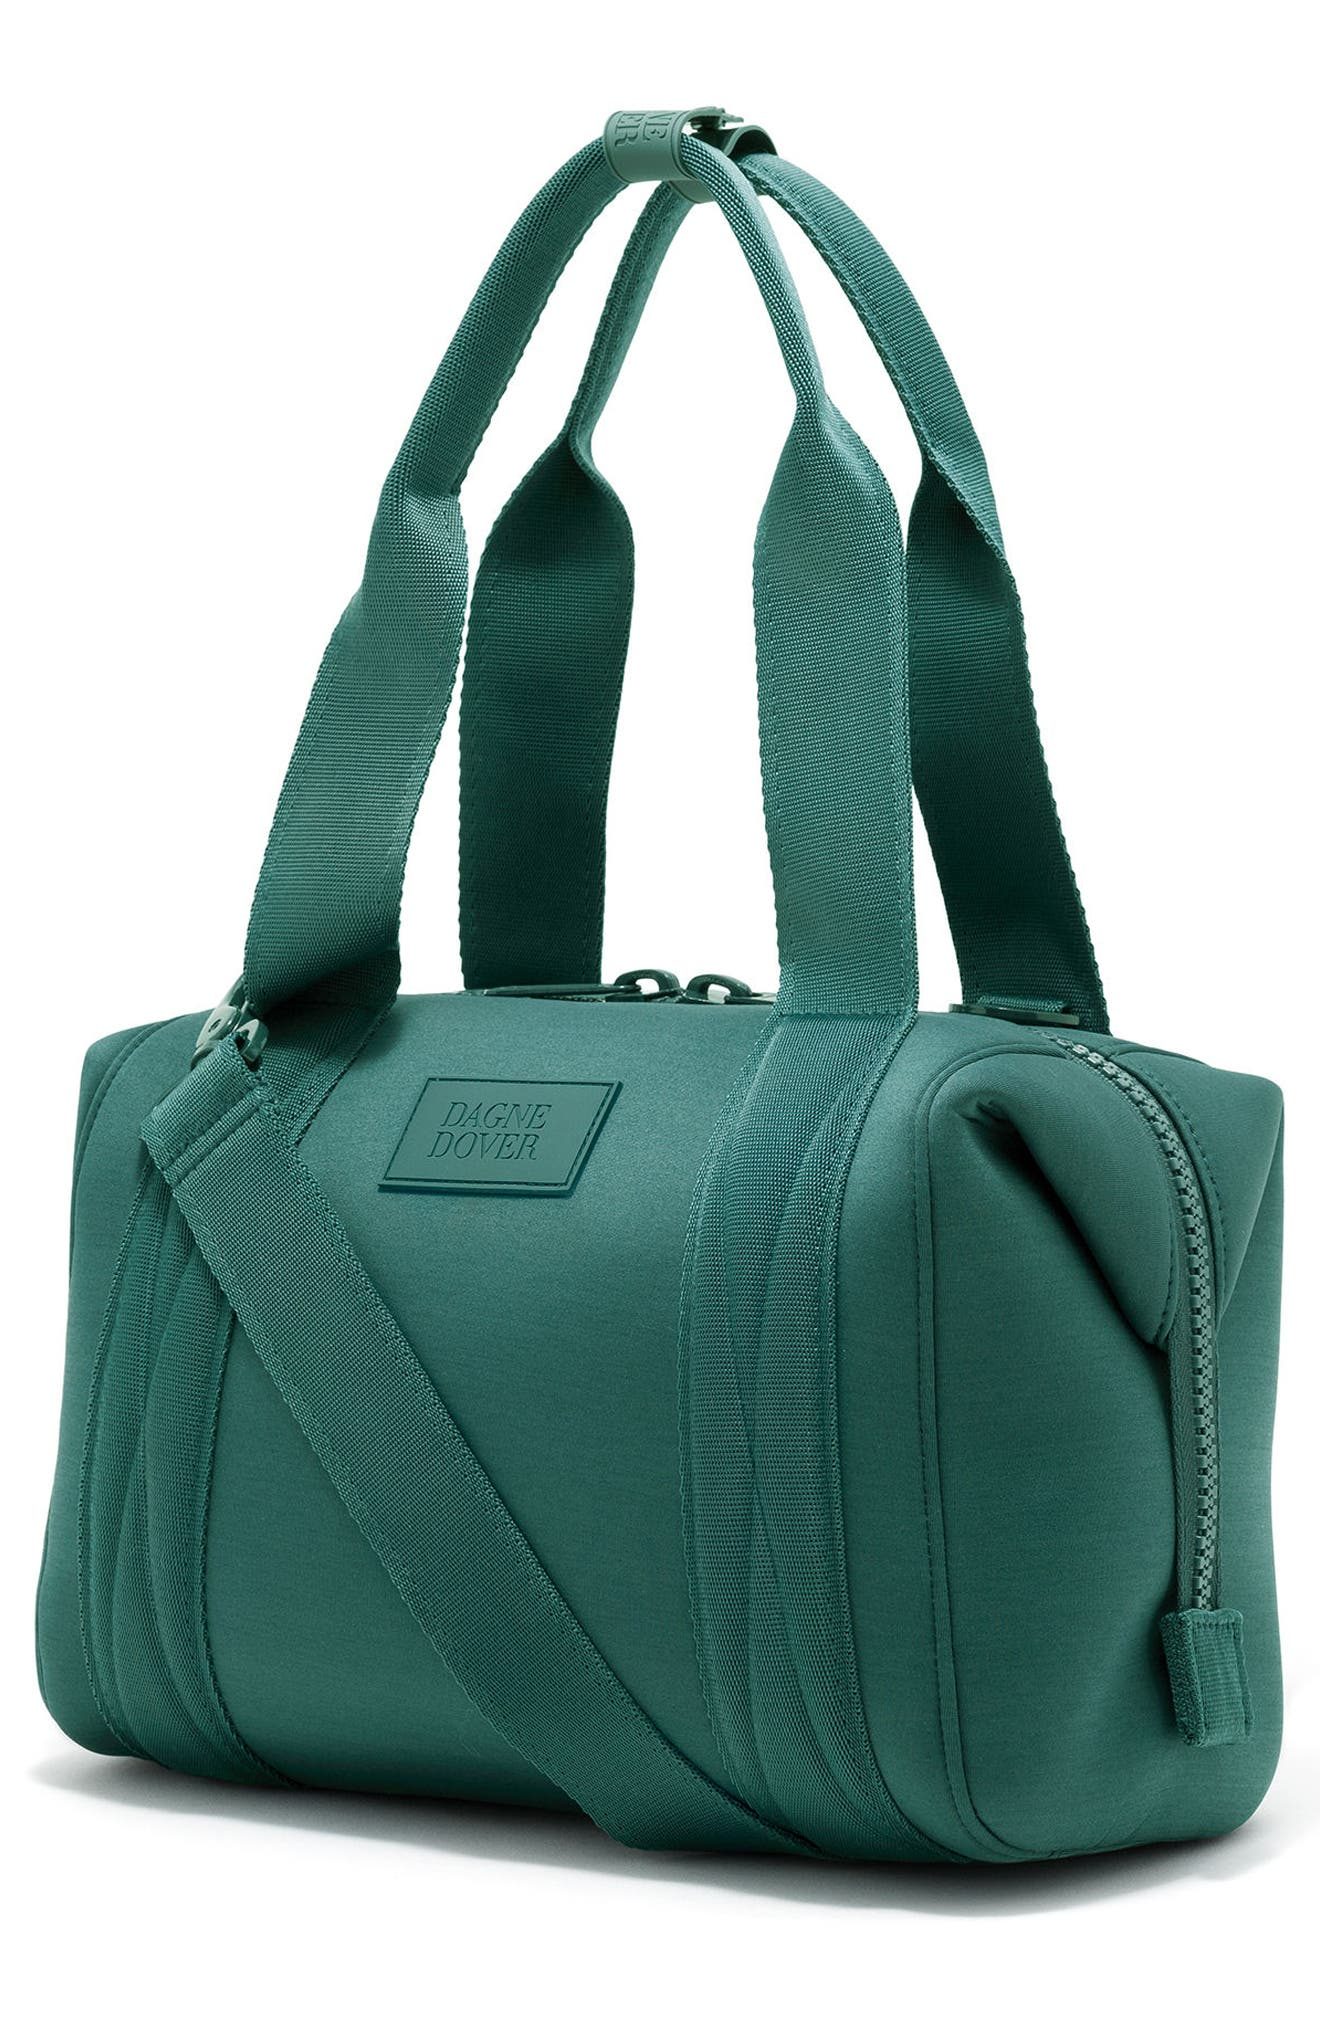 Main Image - Dagne Dover 365 Small Landon Carryall Duffel Bag